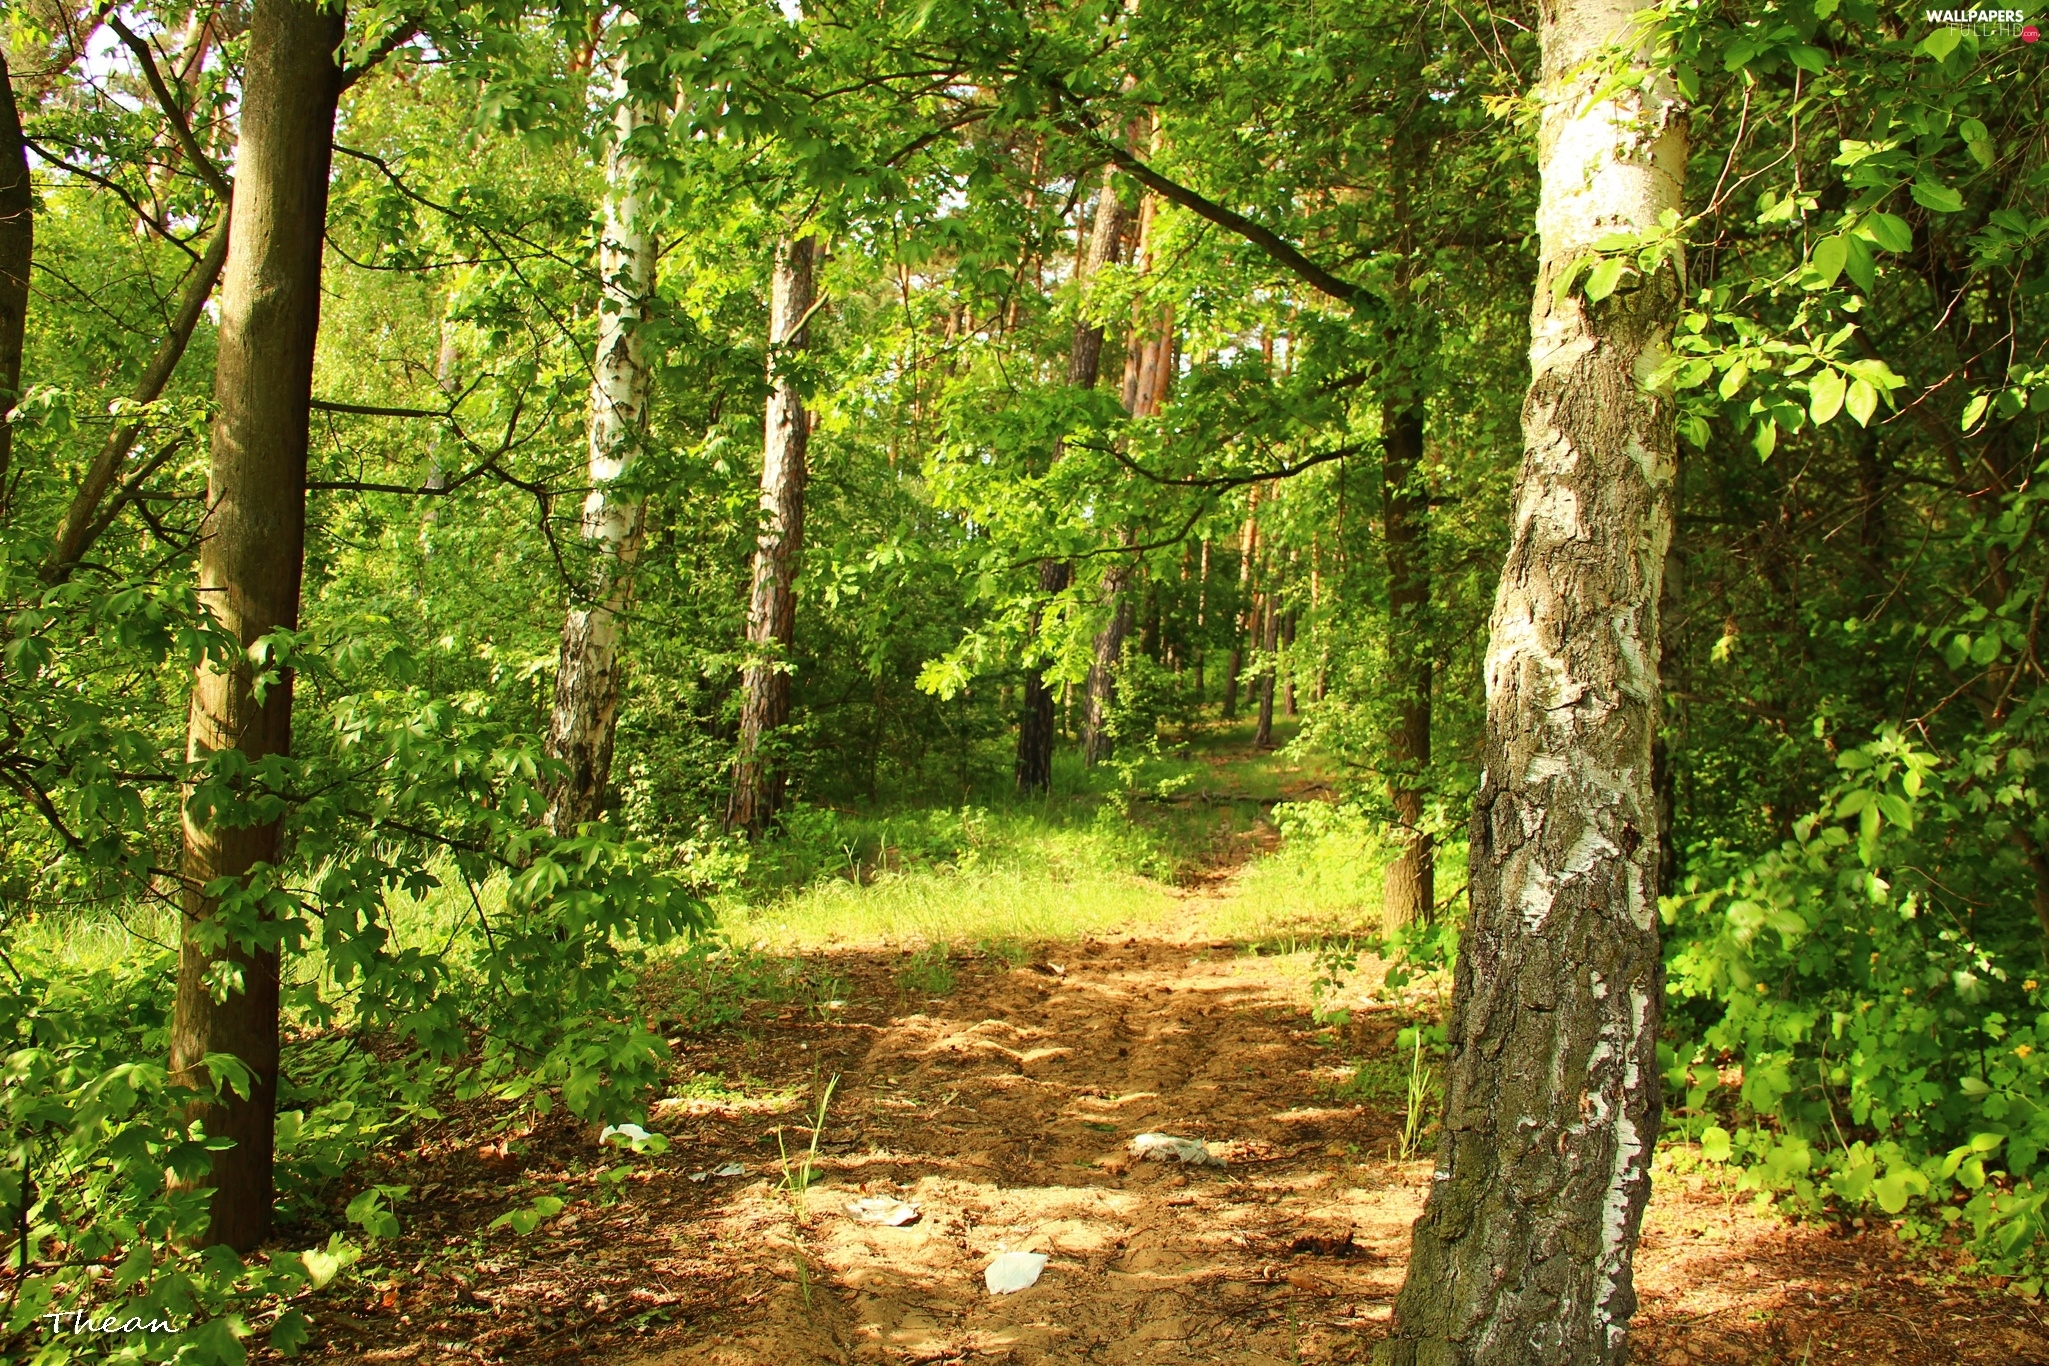 Path, viewes, forest, trees